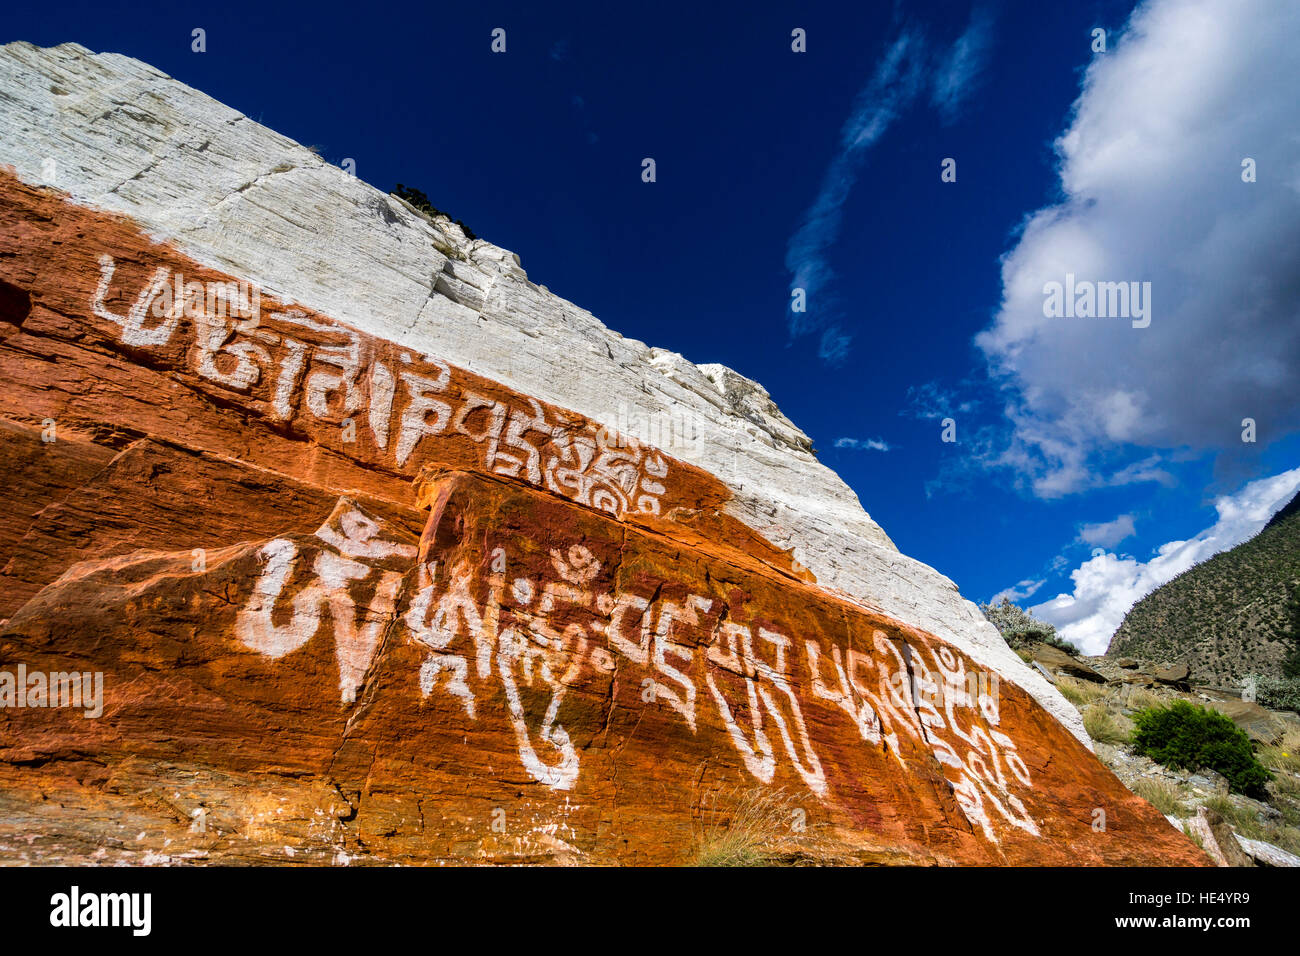 A rock above the village is painted red and white with some tibetan scriptures for religious reasons - Stock Image